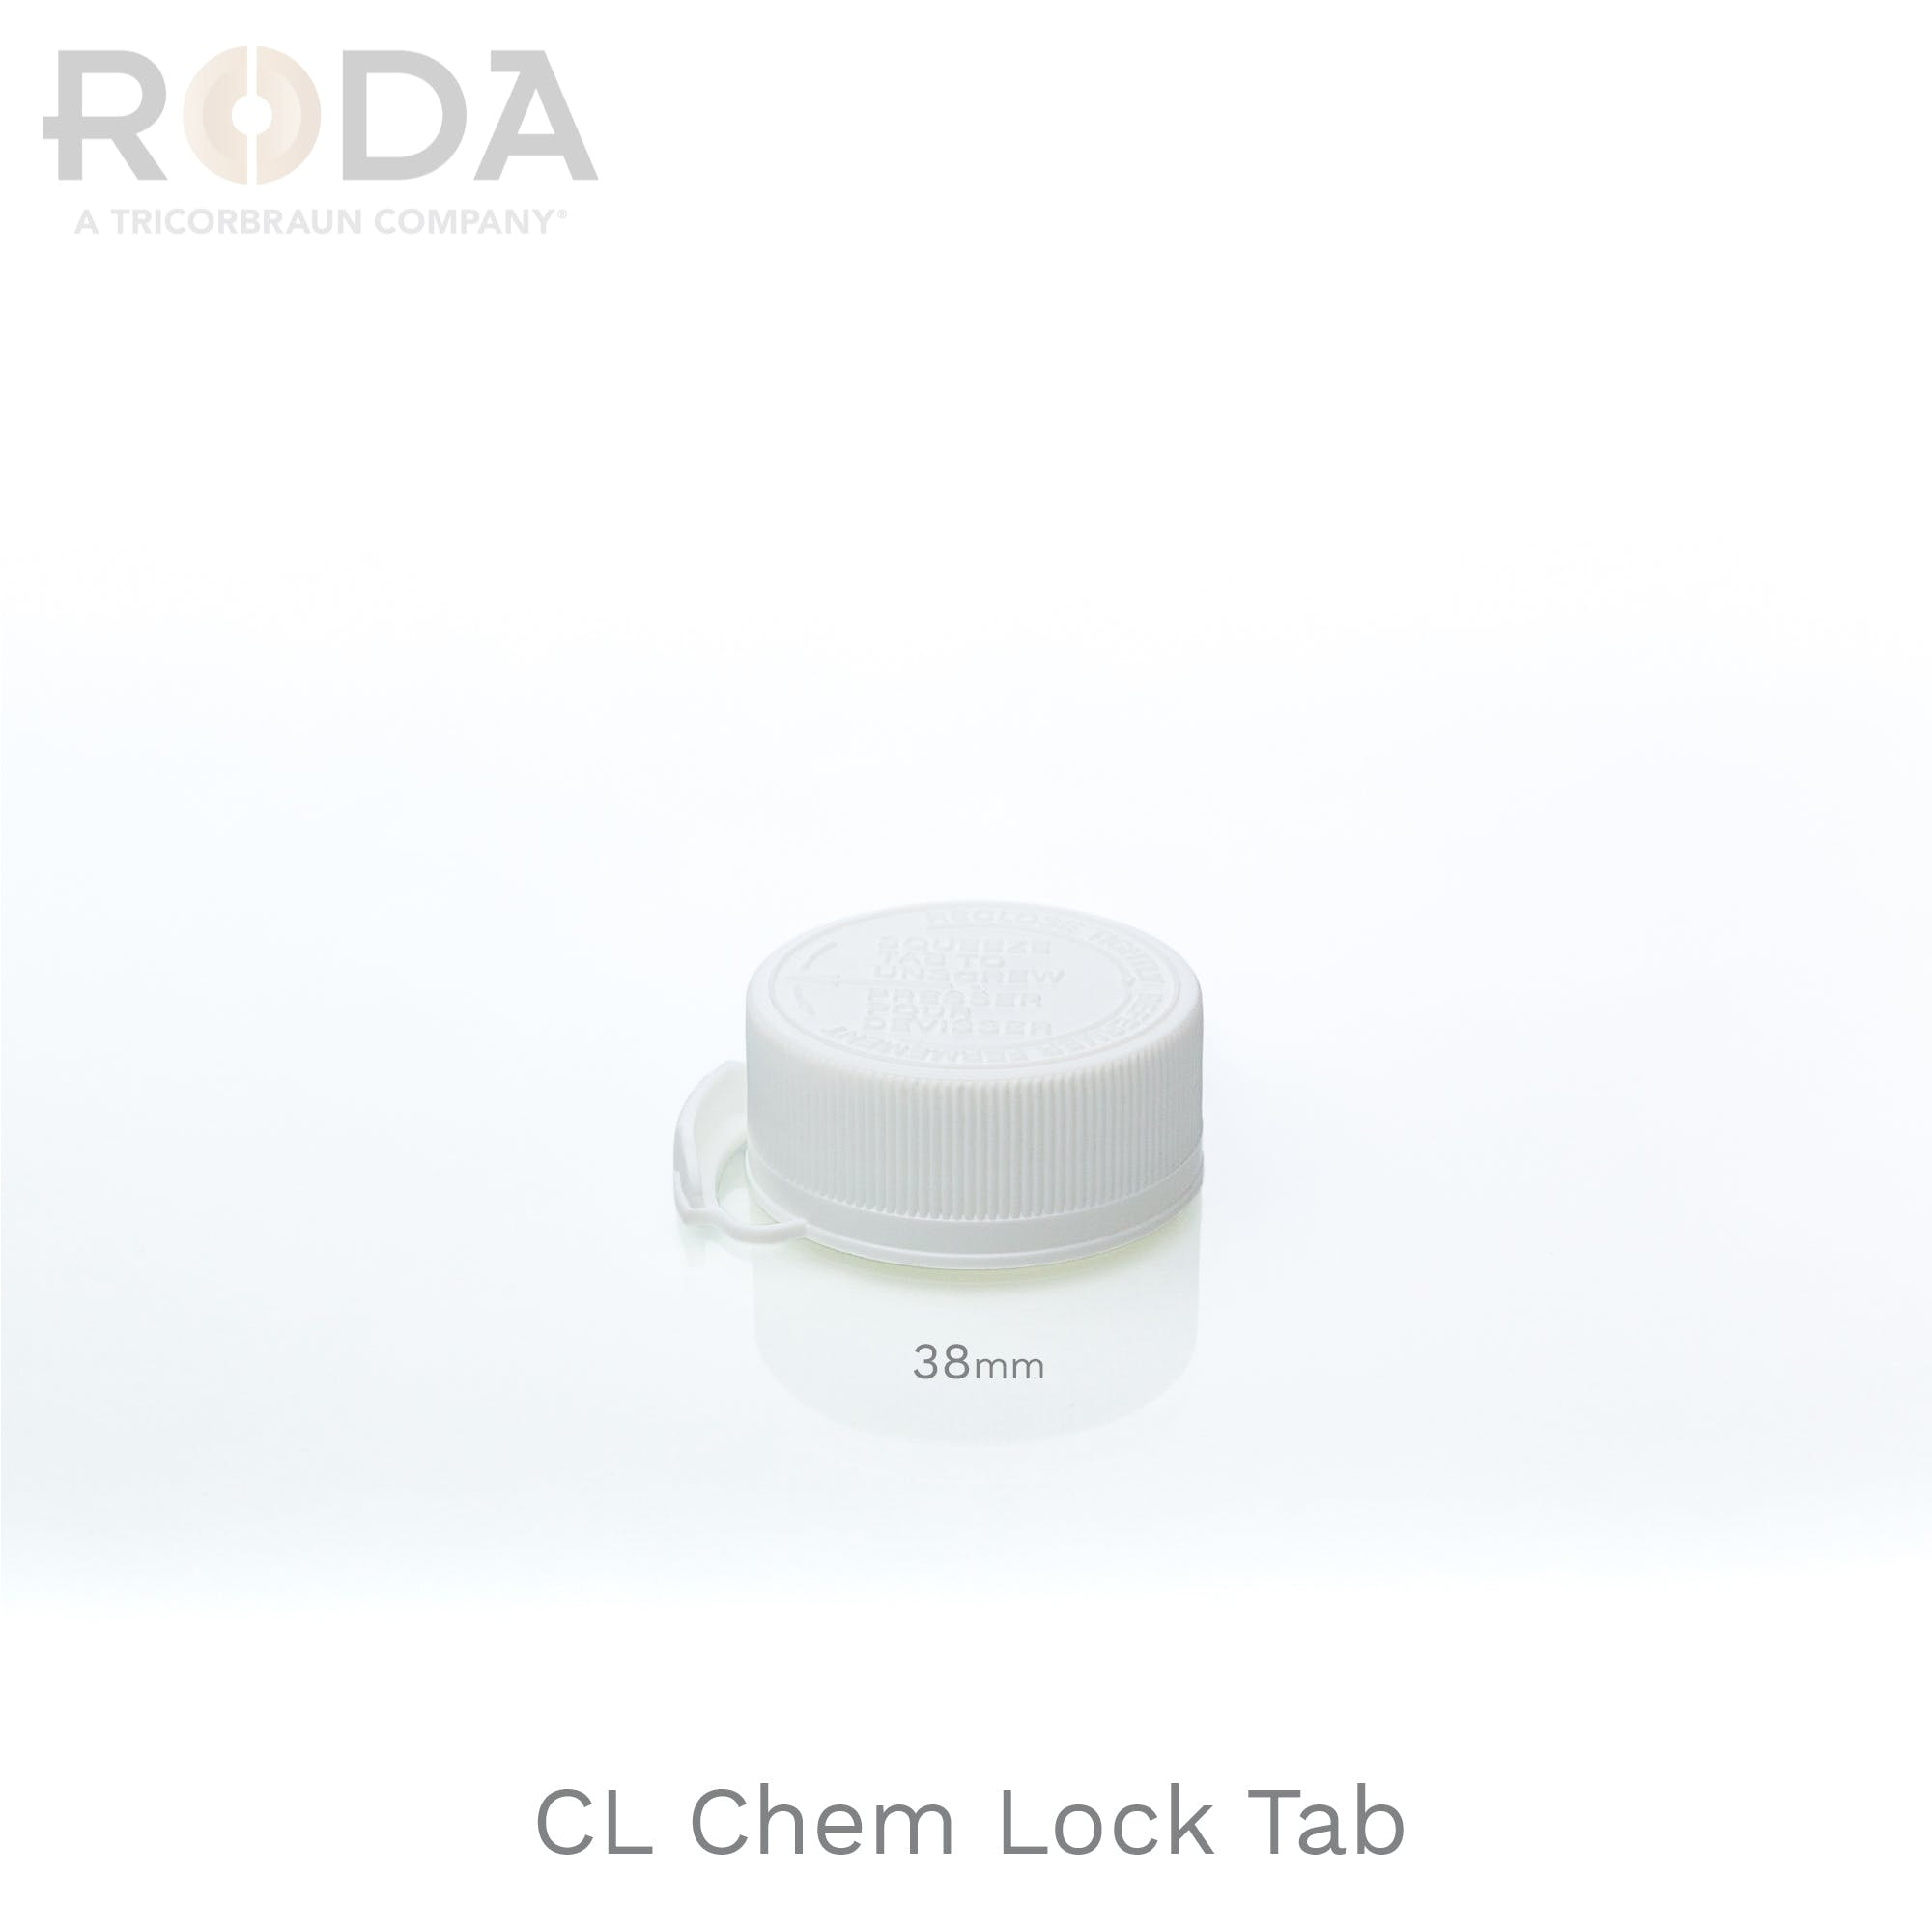 CL Chem Lock Tab